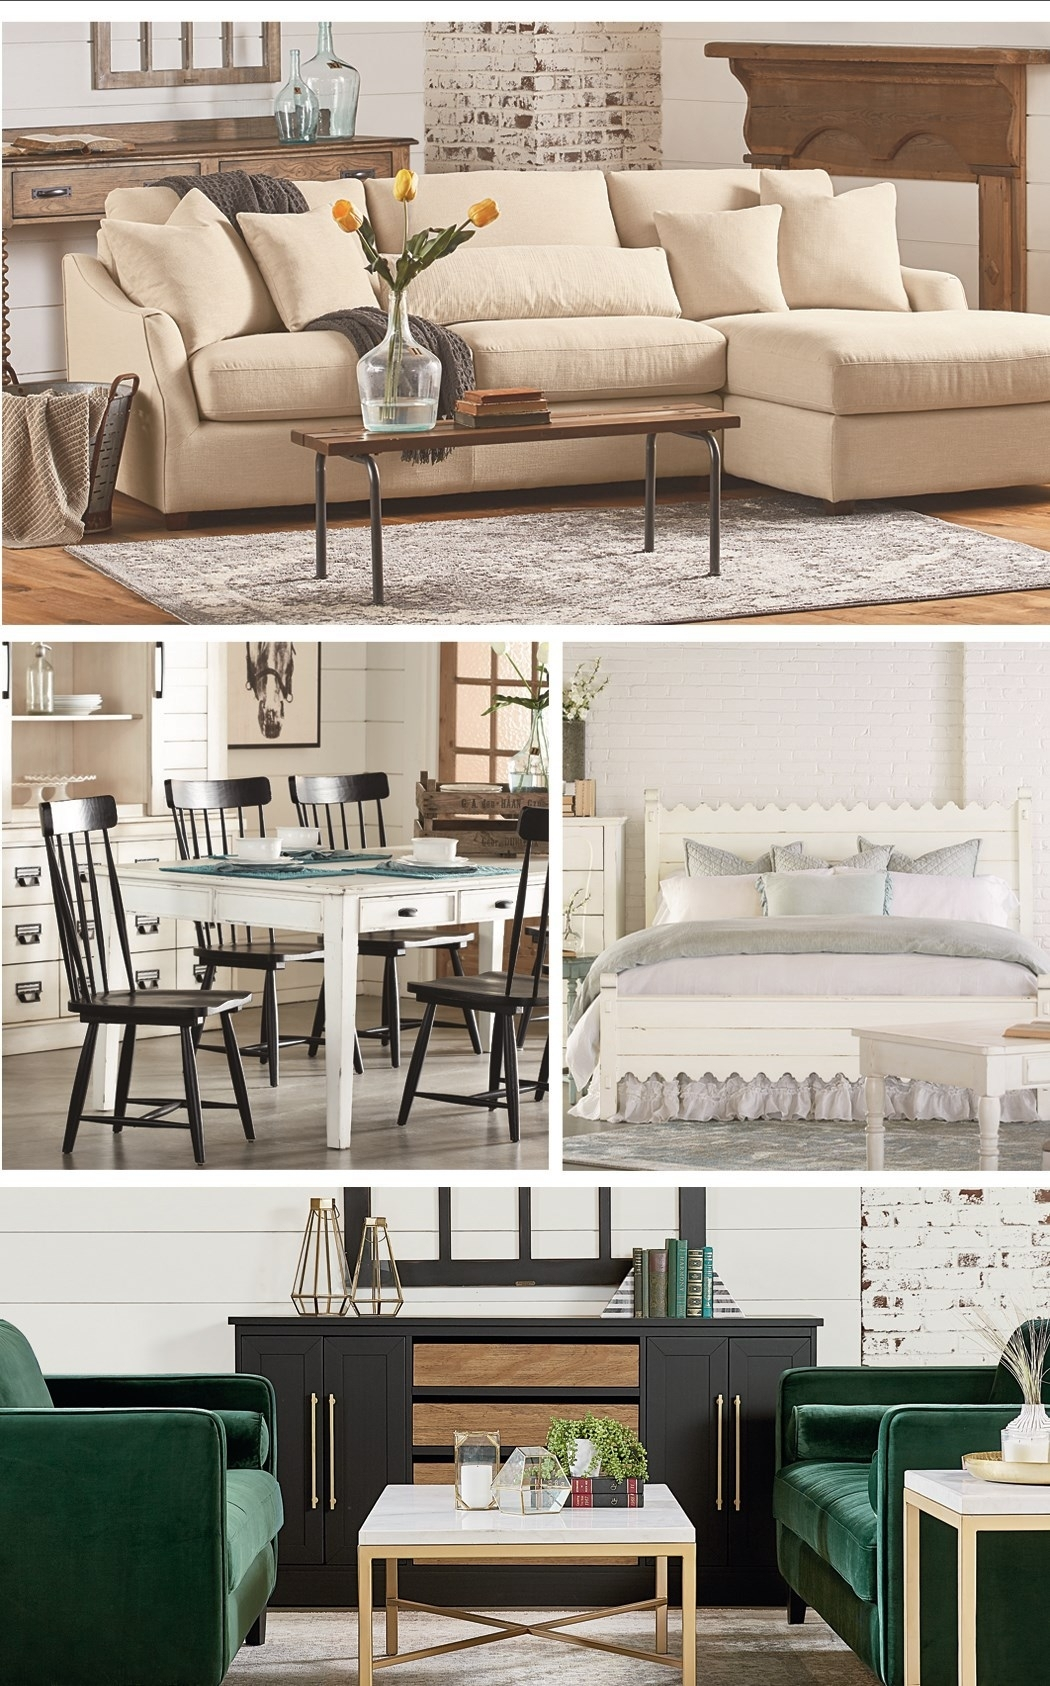 Magnolia Homejoanna Gaines | Fredericksburg, Richmond Intended For Magnolia Home Homestead 4 Piece Sectionals By Joanna Gaines (View 10 of 30)